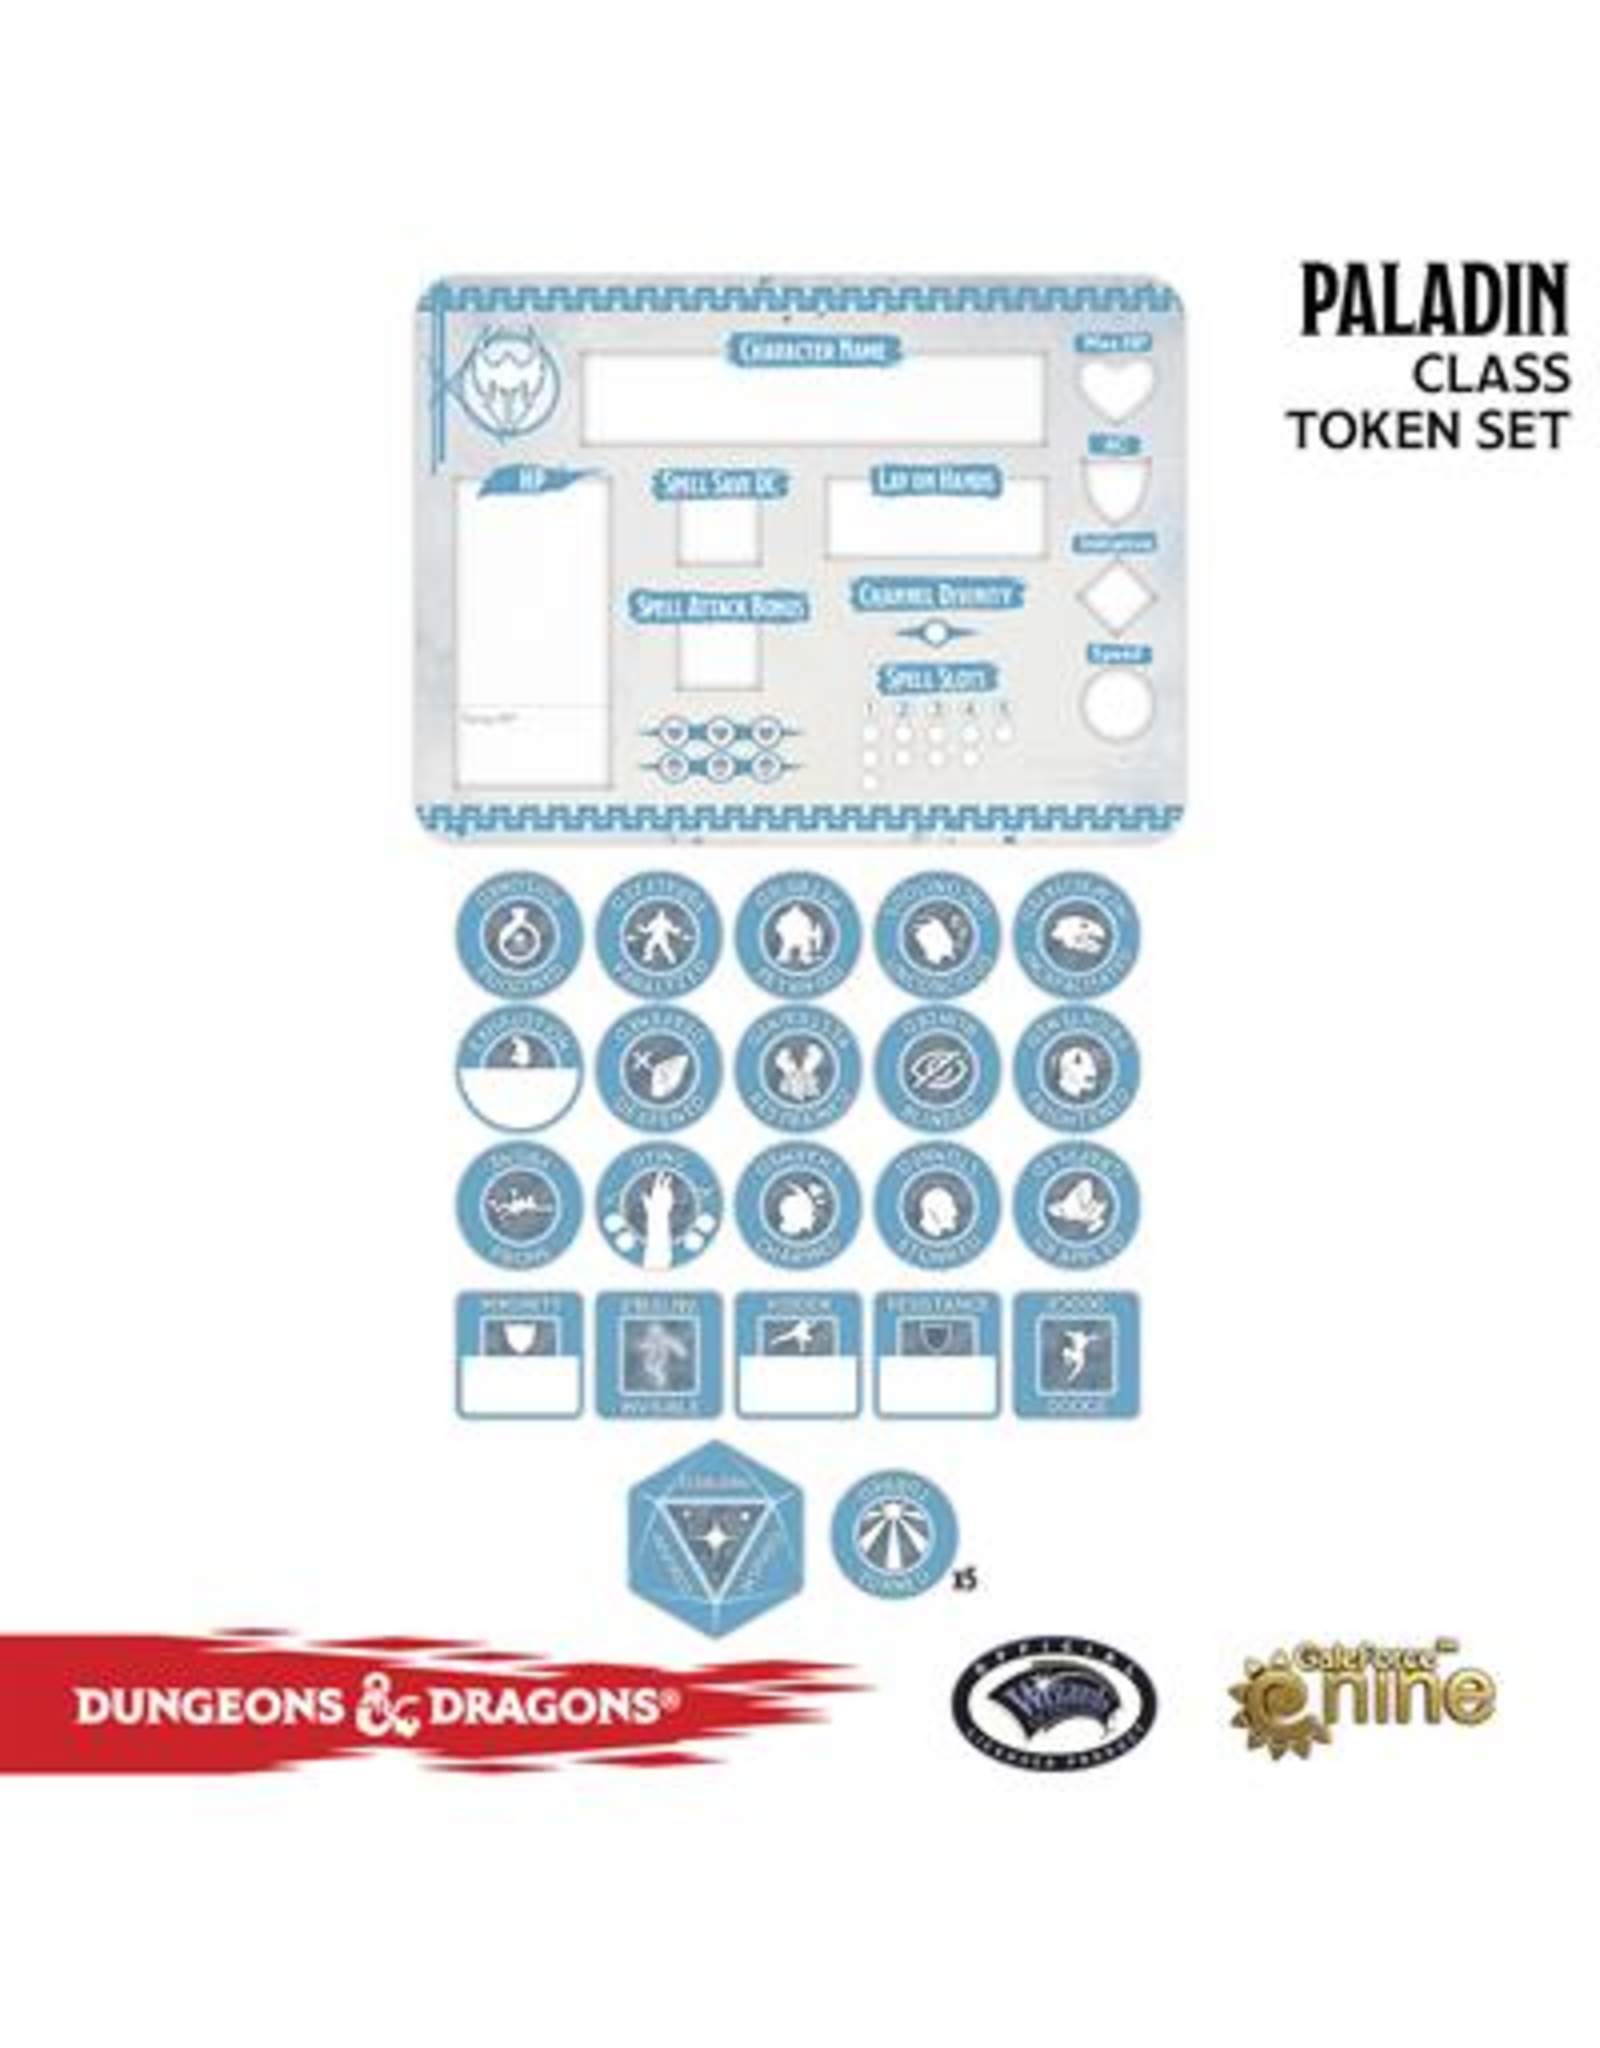 Gale Force Nine Dungeons & Dragons 5th Edition Token Set & Player Board: Paladin